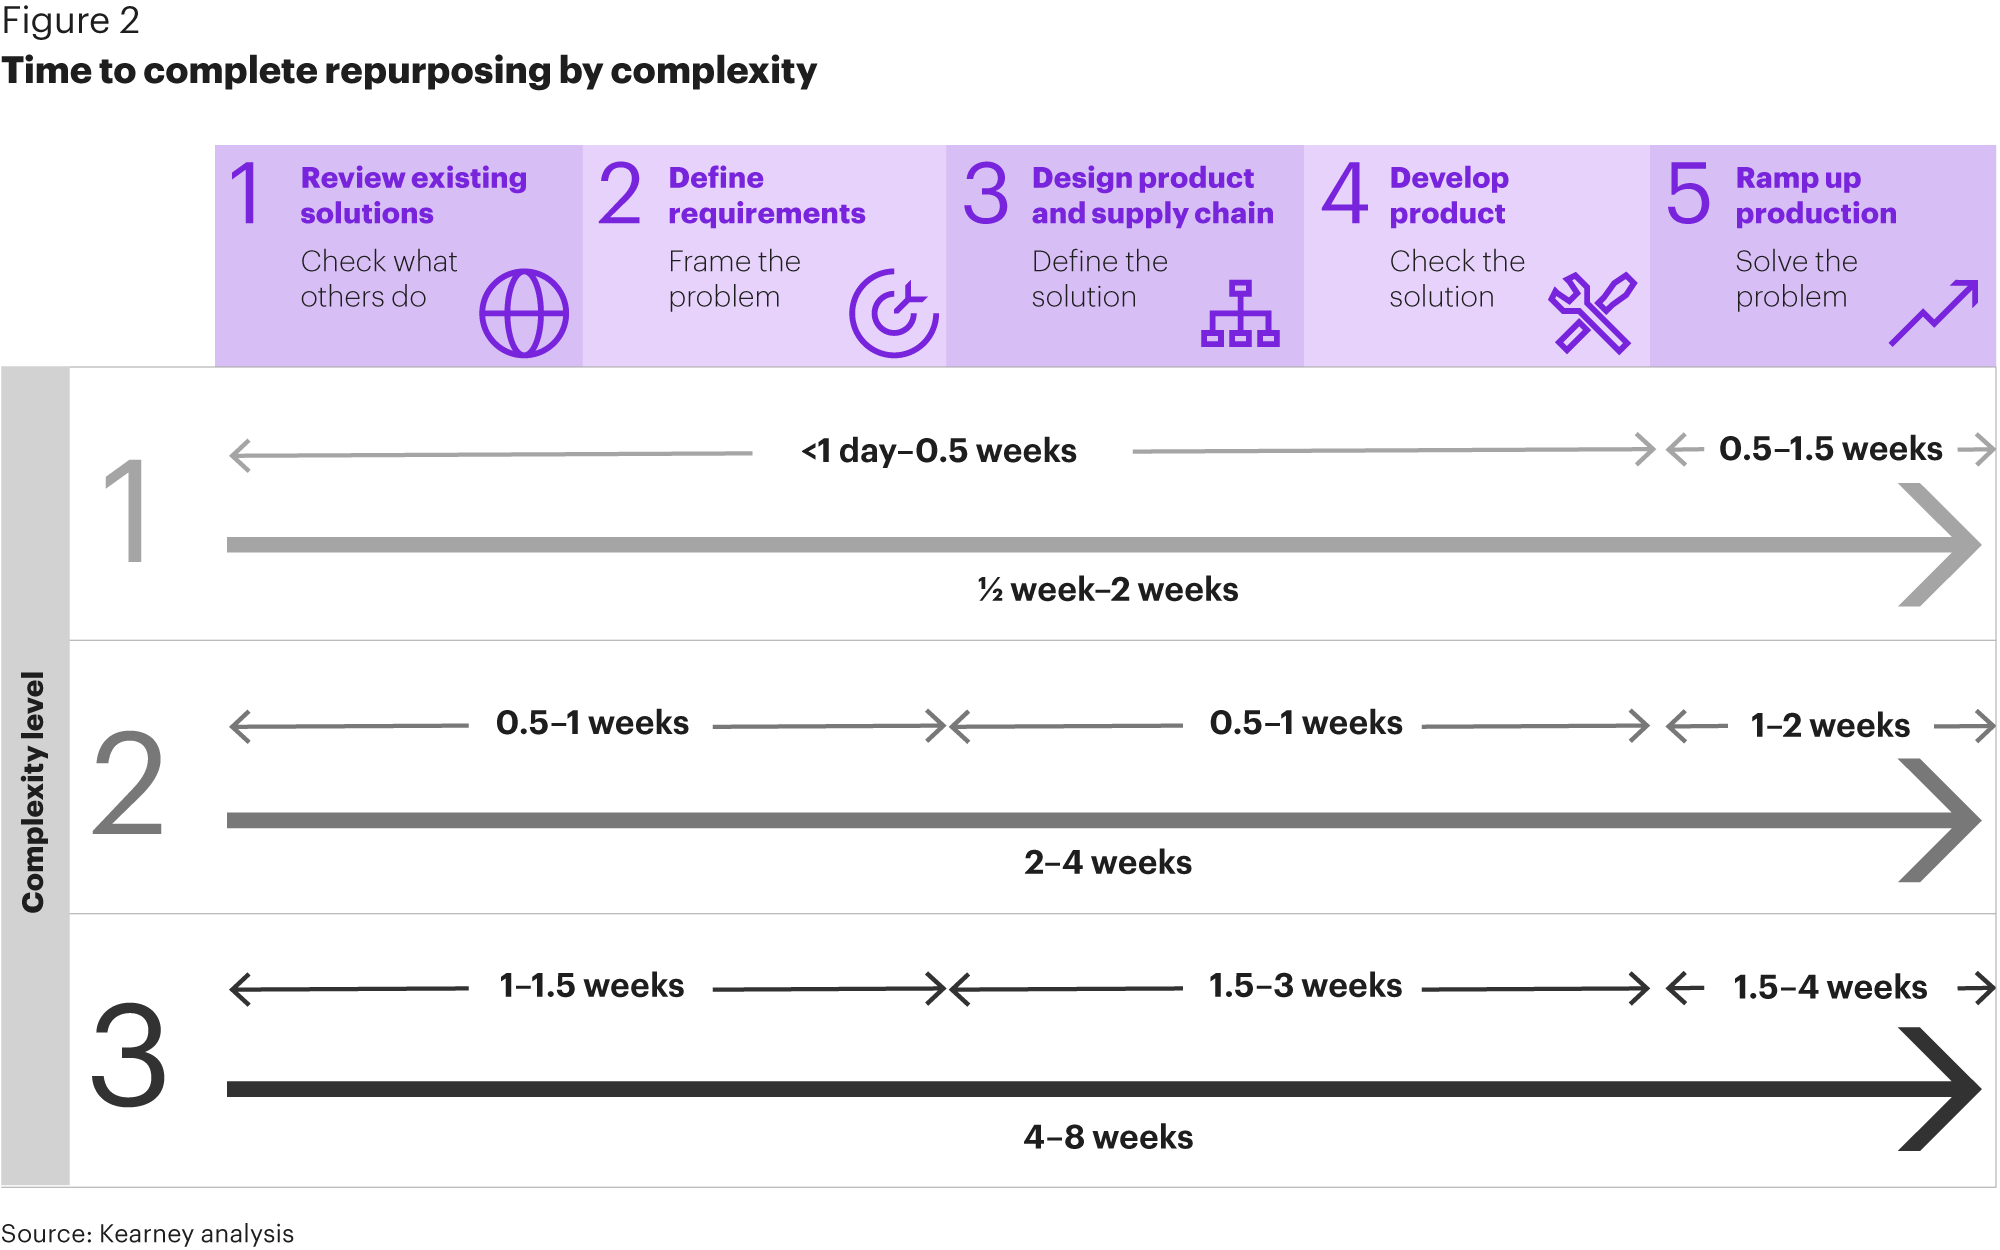 Kearney - Time to complete repurposing by complexity Framework